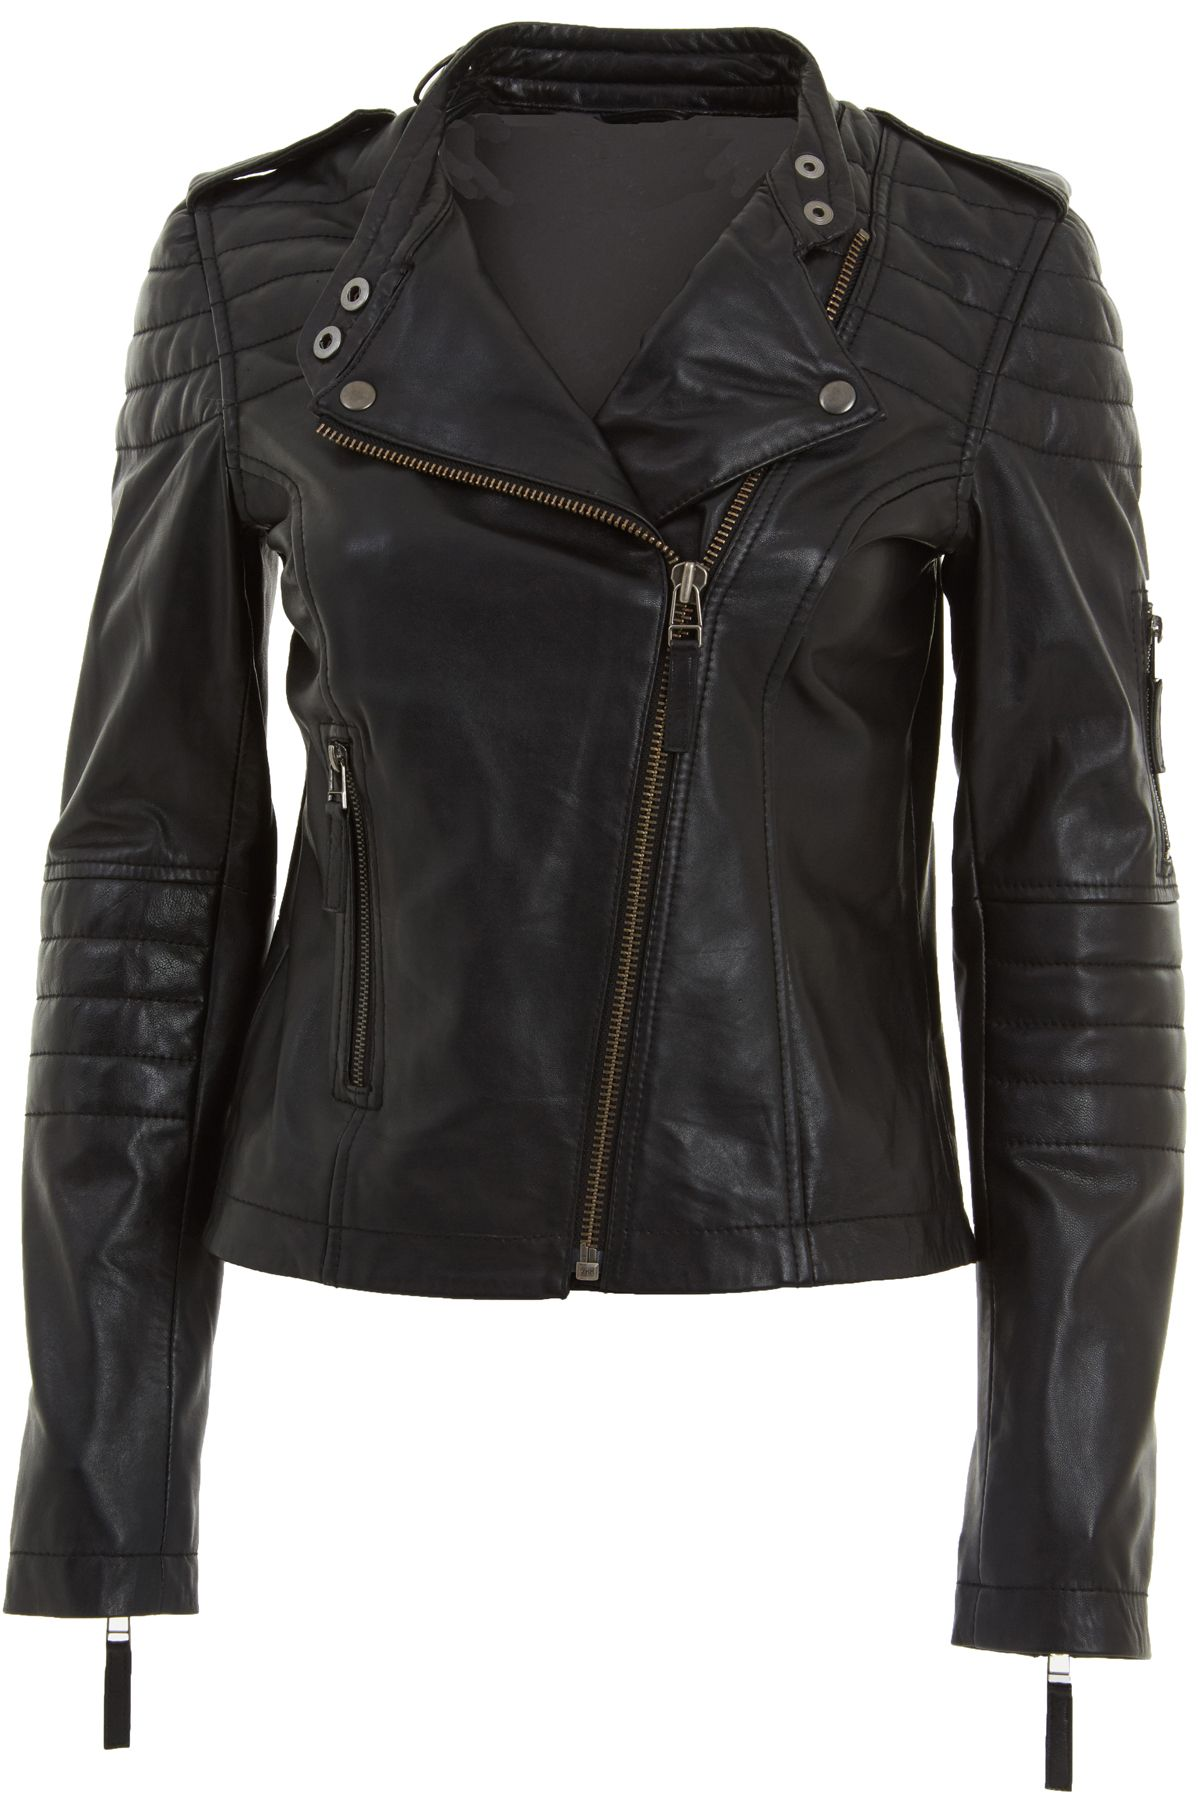 Collection Black Biker Jacket Womens Pictures - Reikian